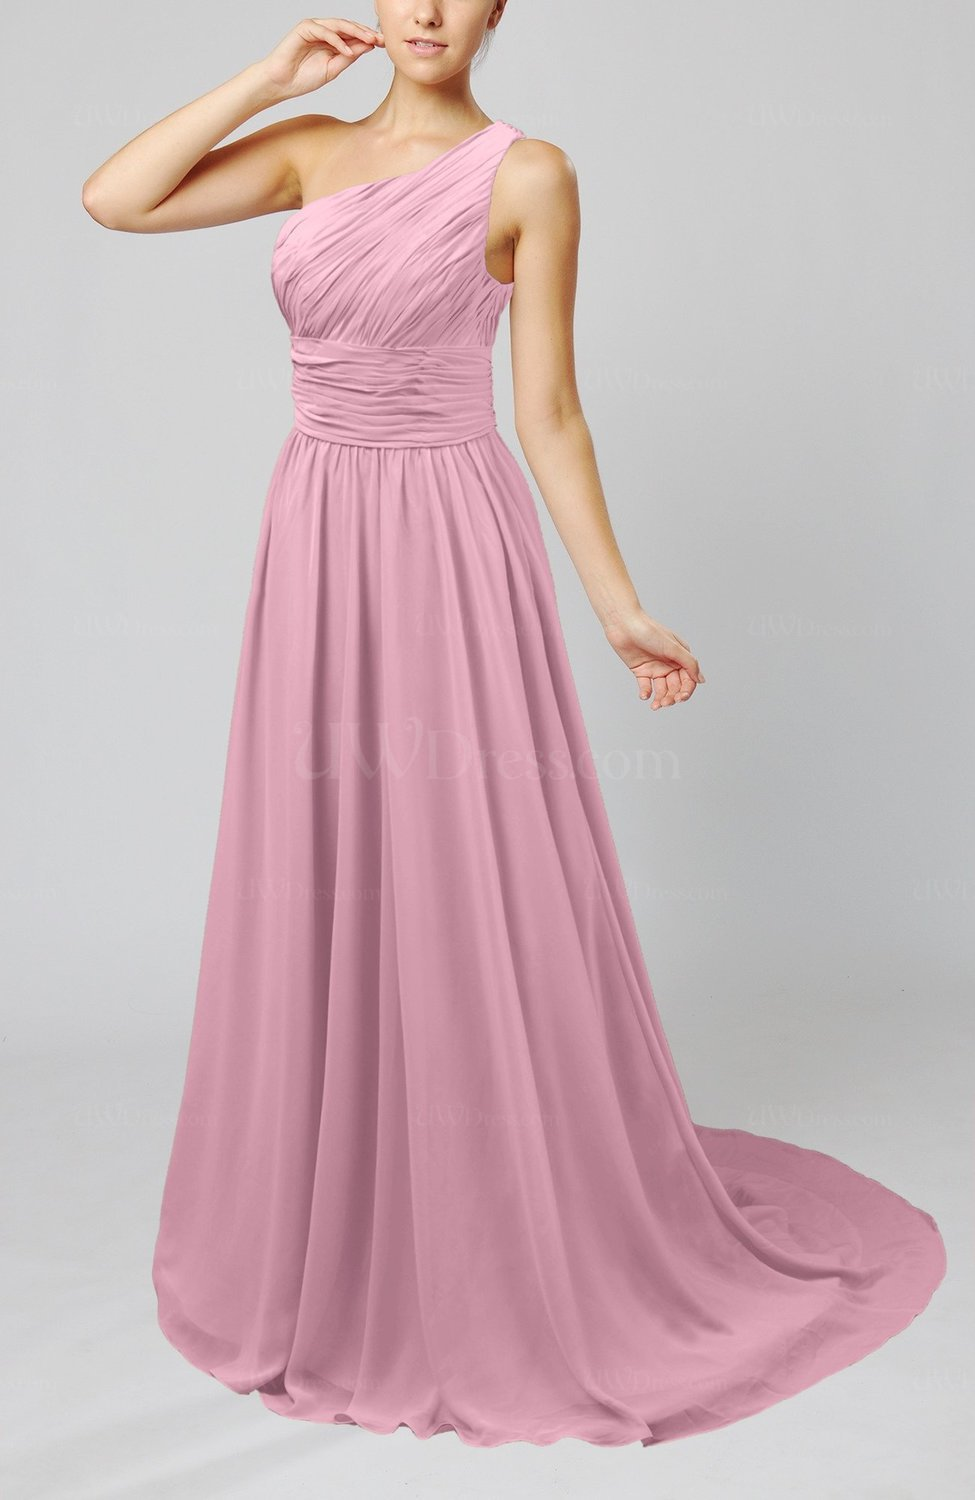 dd2a1197e8 Cinderella Asymmetric Neckline Sleeveless Half Backless Court Train  Bridesmaid Dresses